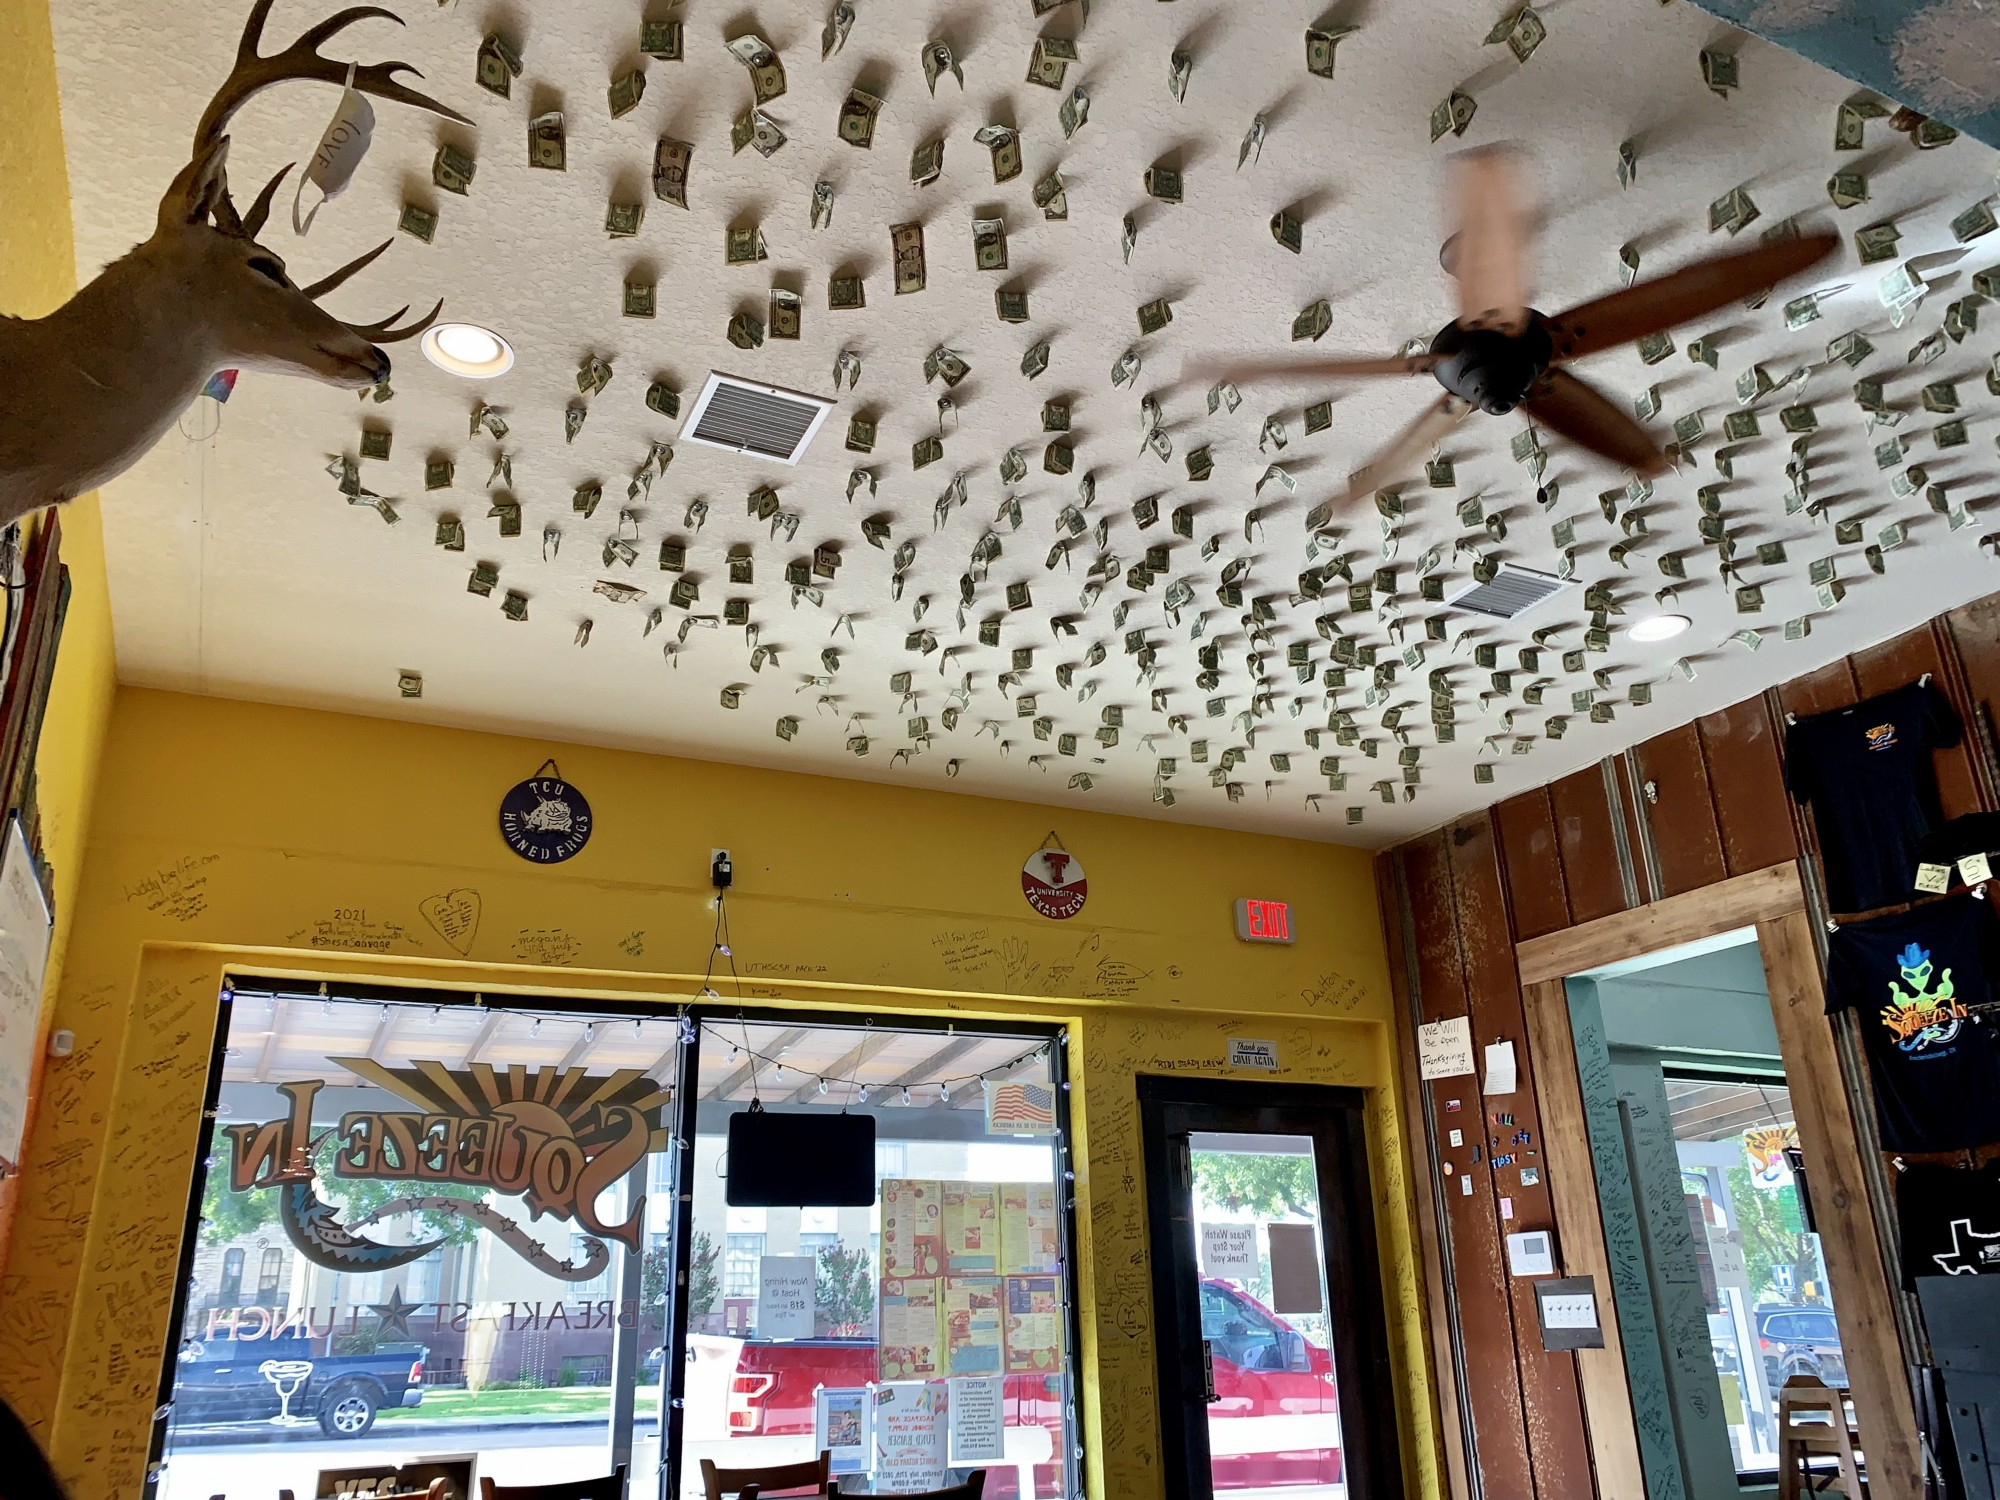 Cash taped to the ceiling of a pizza restaurant